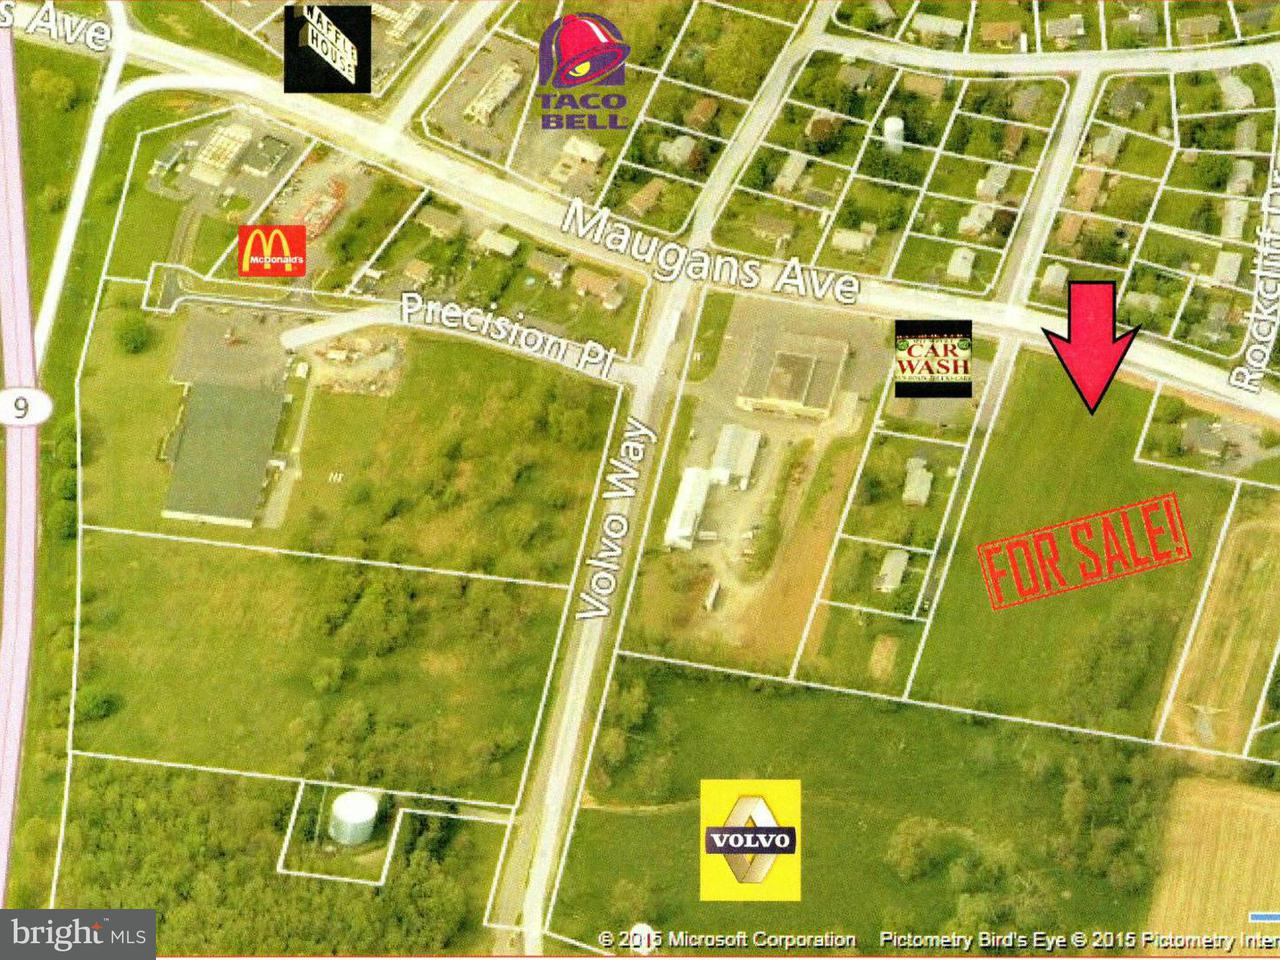 Land for Sale at Maugans Avenue Maugans Avenue Hagerstown, Maryland 21740 United States